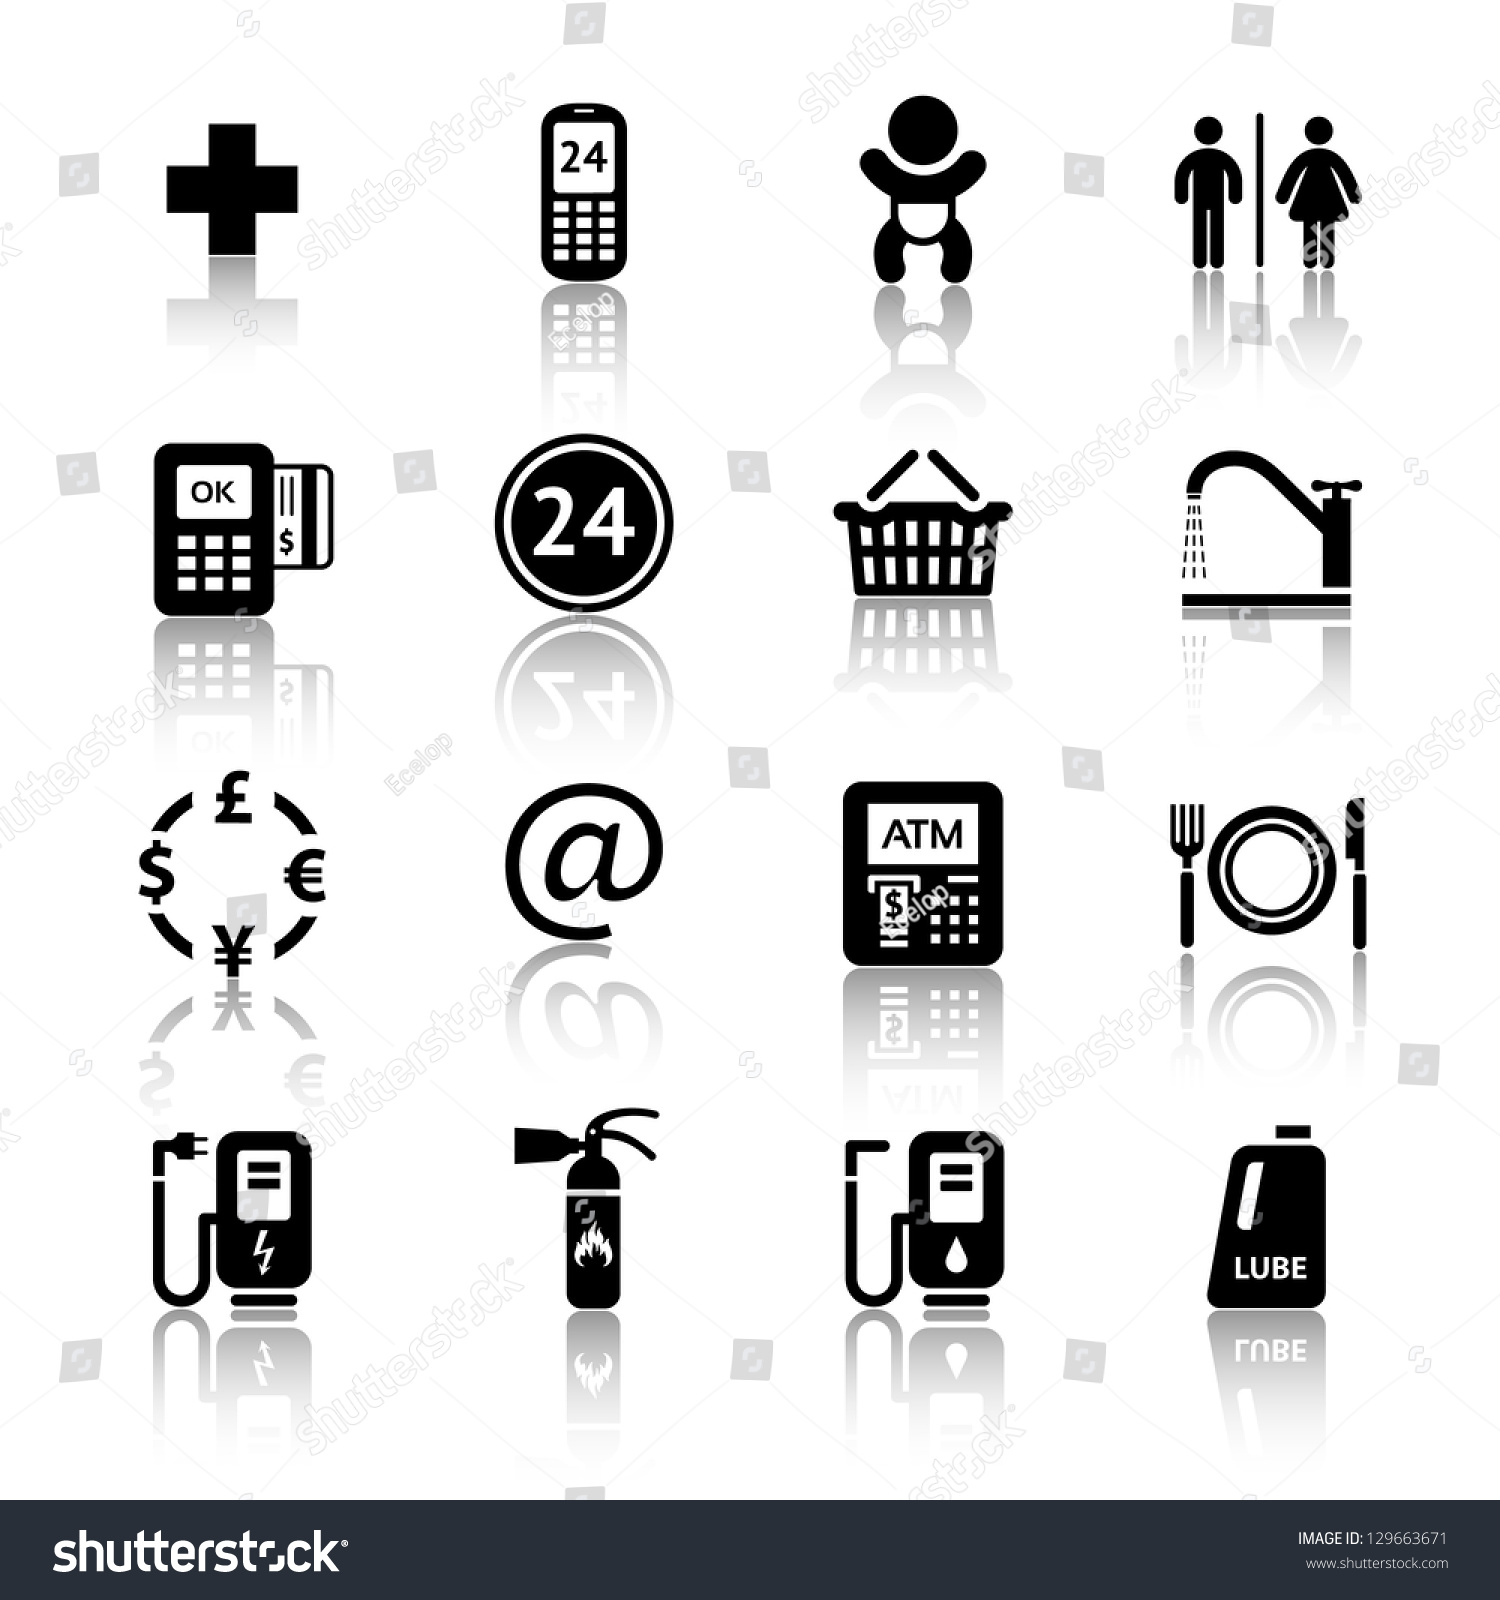 Gas Station Icons Symbols Roadside Services Stock Vector - Car signs and symbols